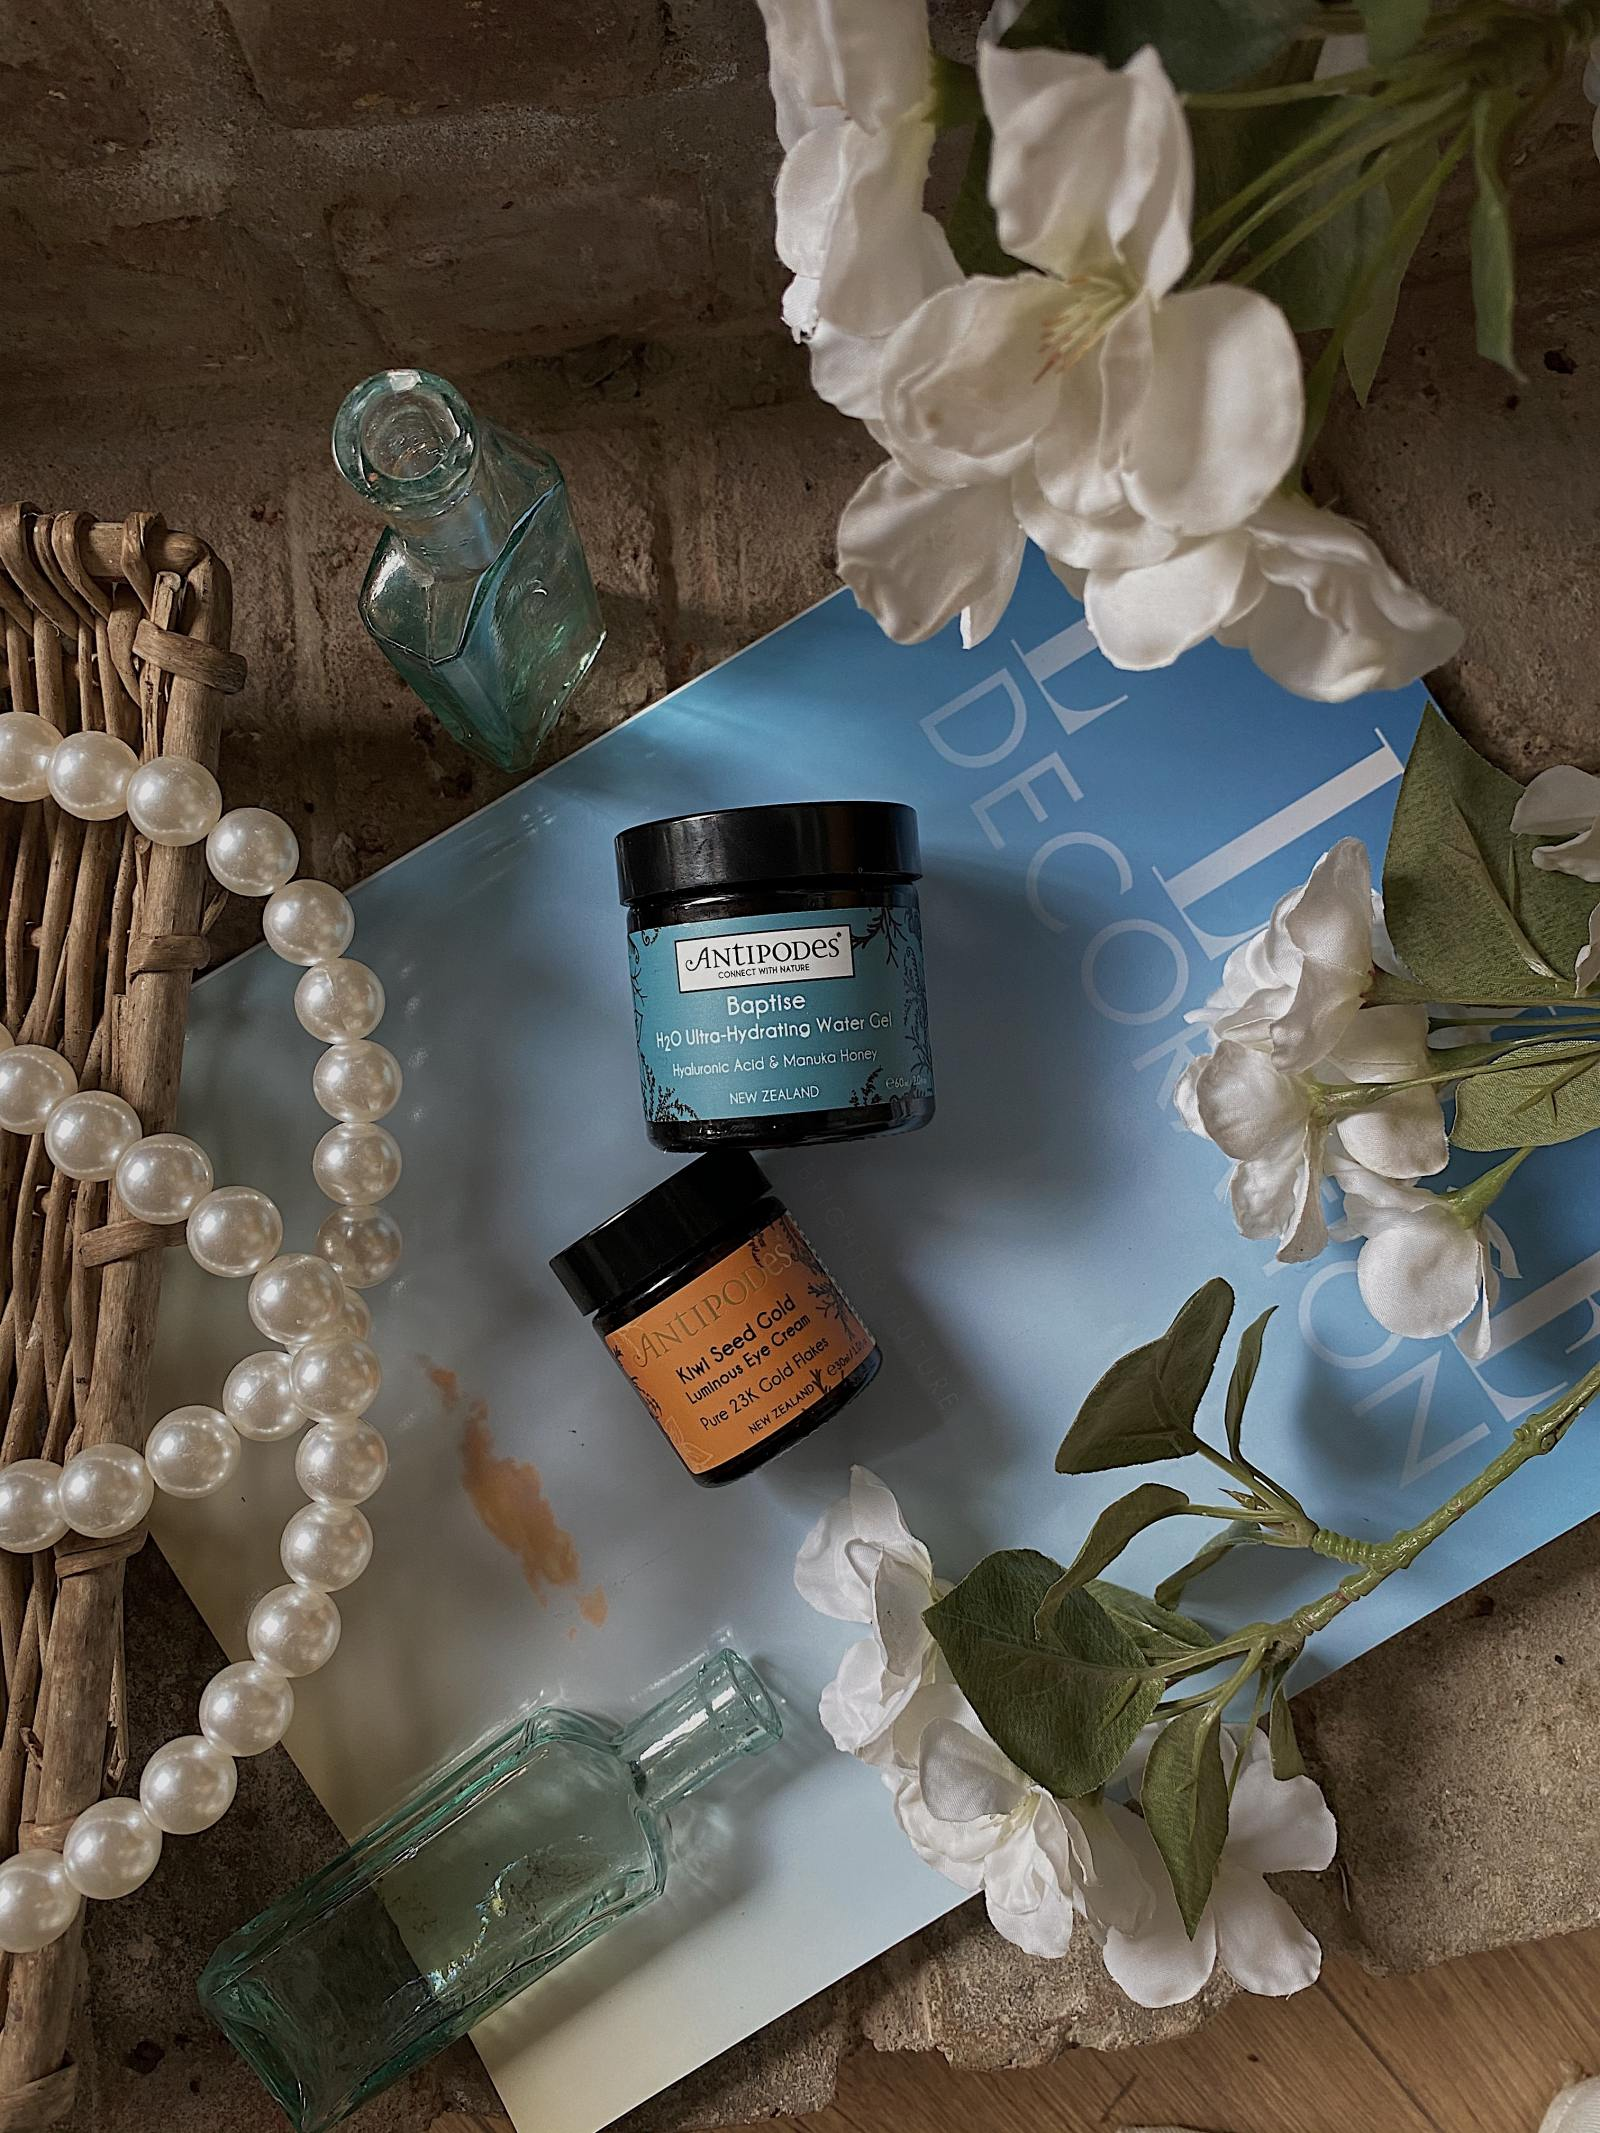 Antipodes skincare review